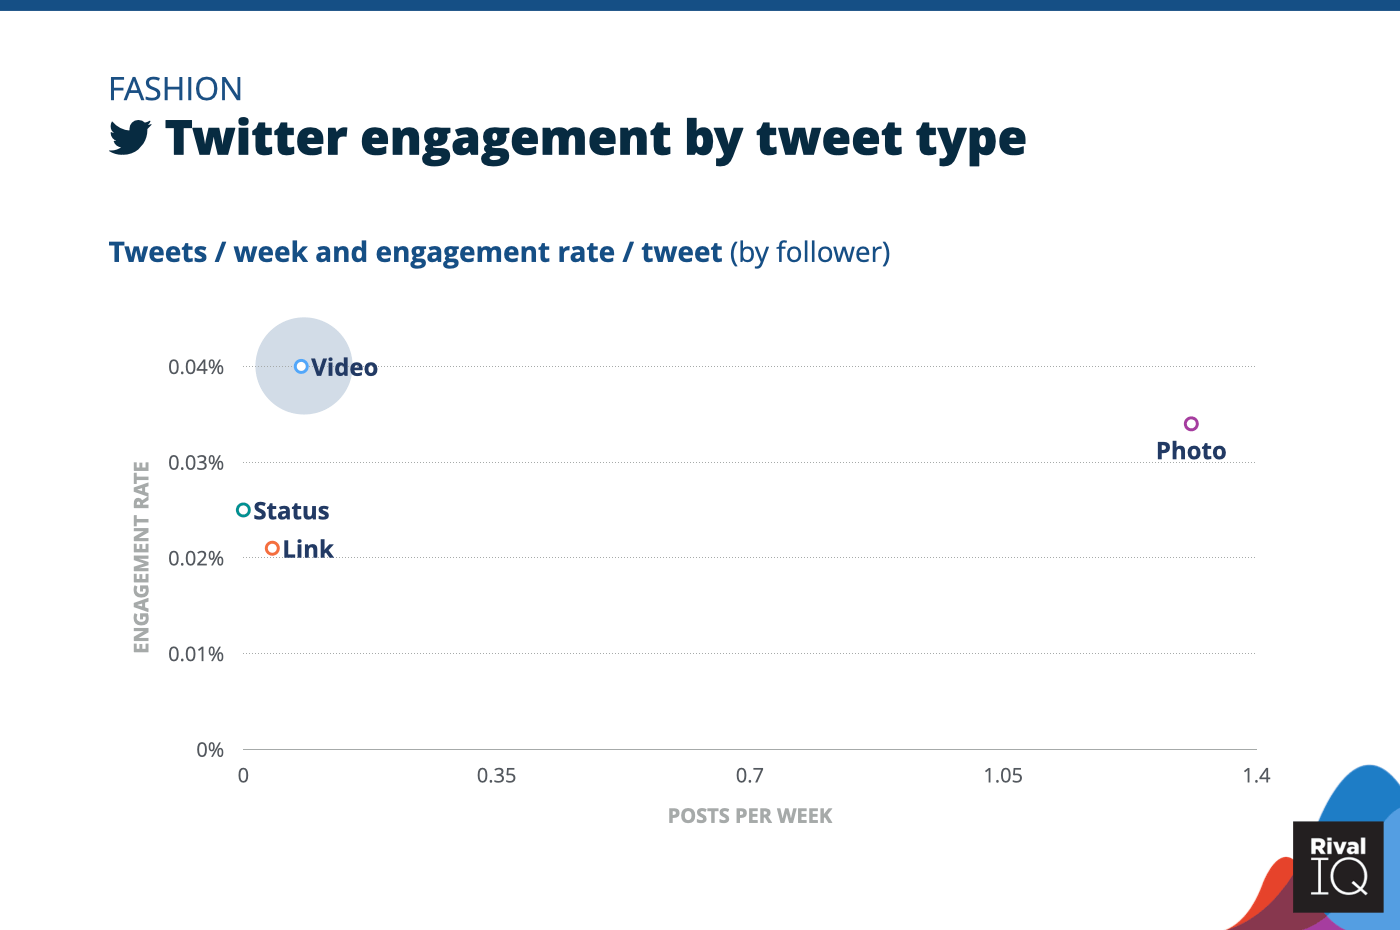 Chart of social media benchmarks for Twitter posts per week and engagement rate by tweet type, Fashion